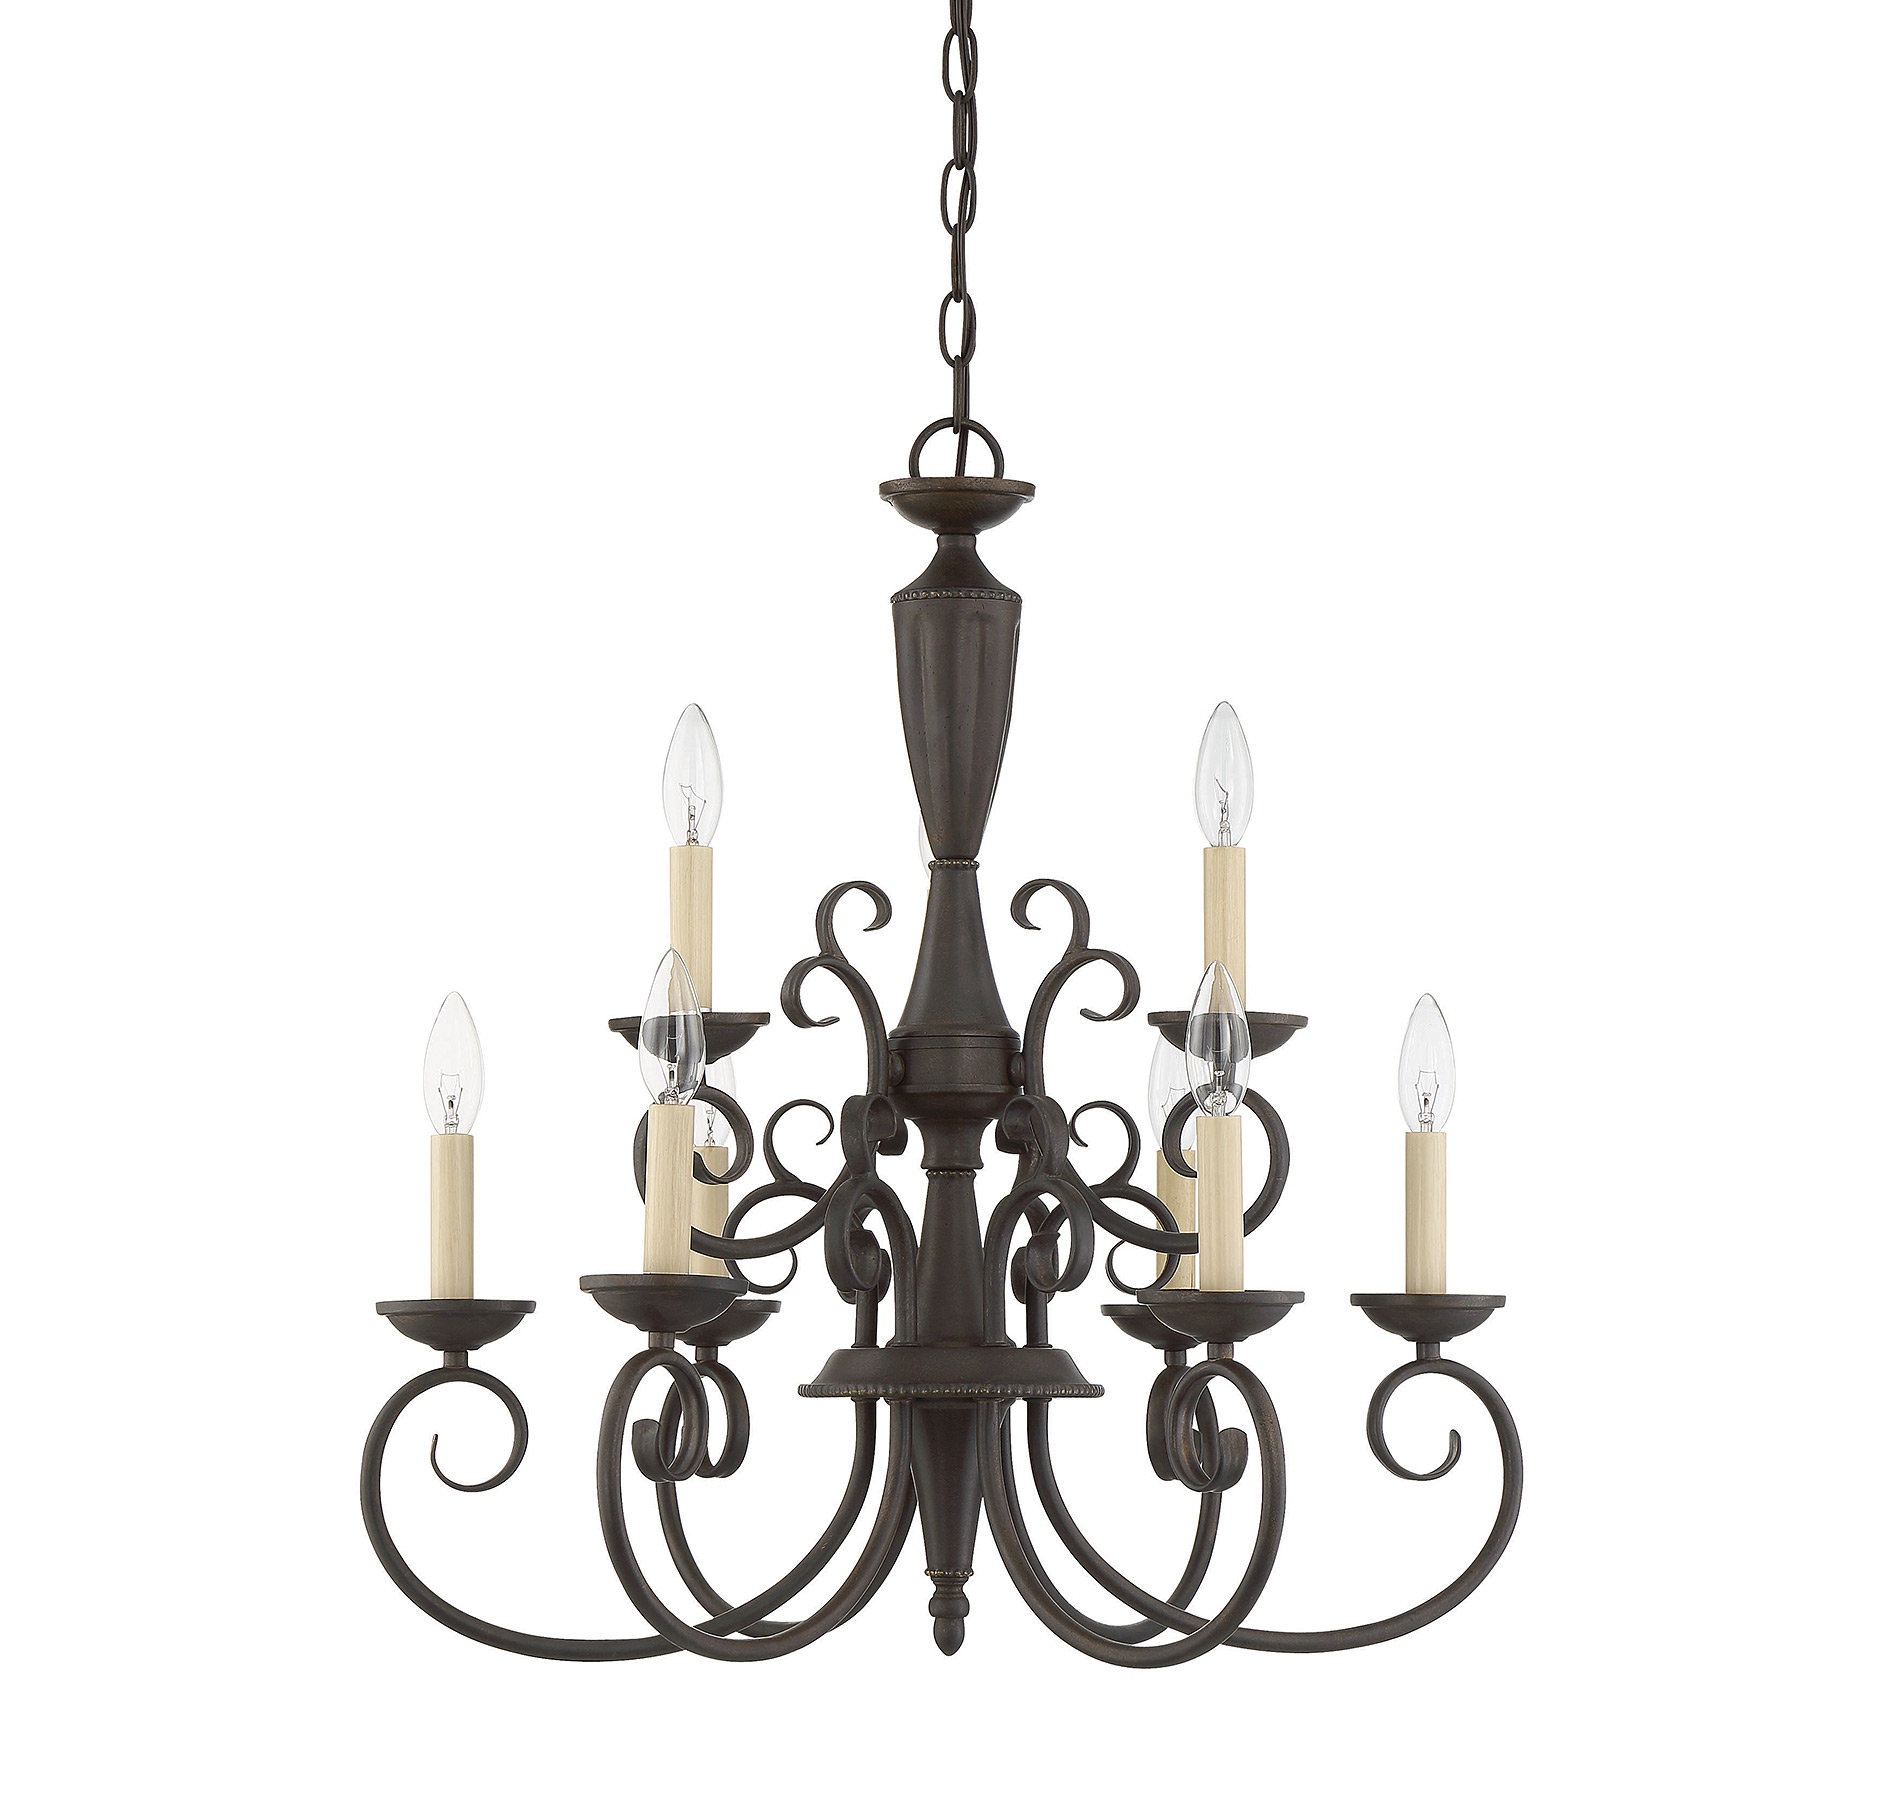 Mcknight 9 Light | Wayfair for Mcknight 9-Light Chandeliers (Image 22 of 30)